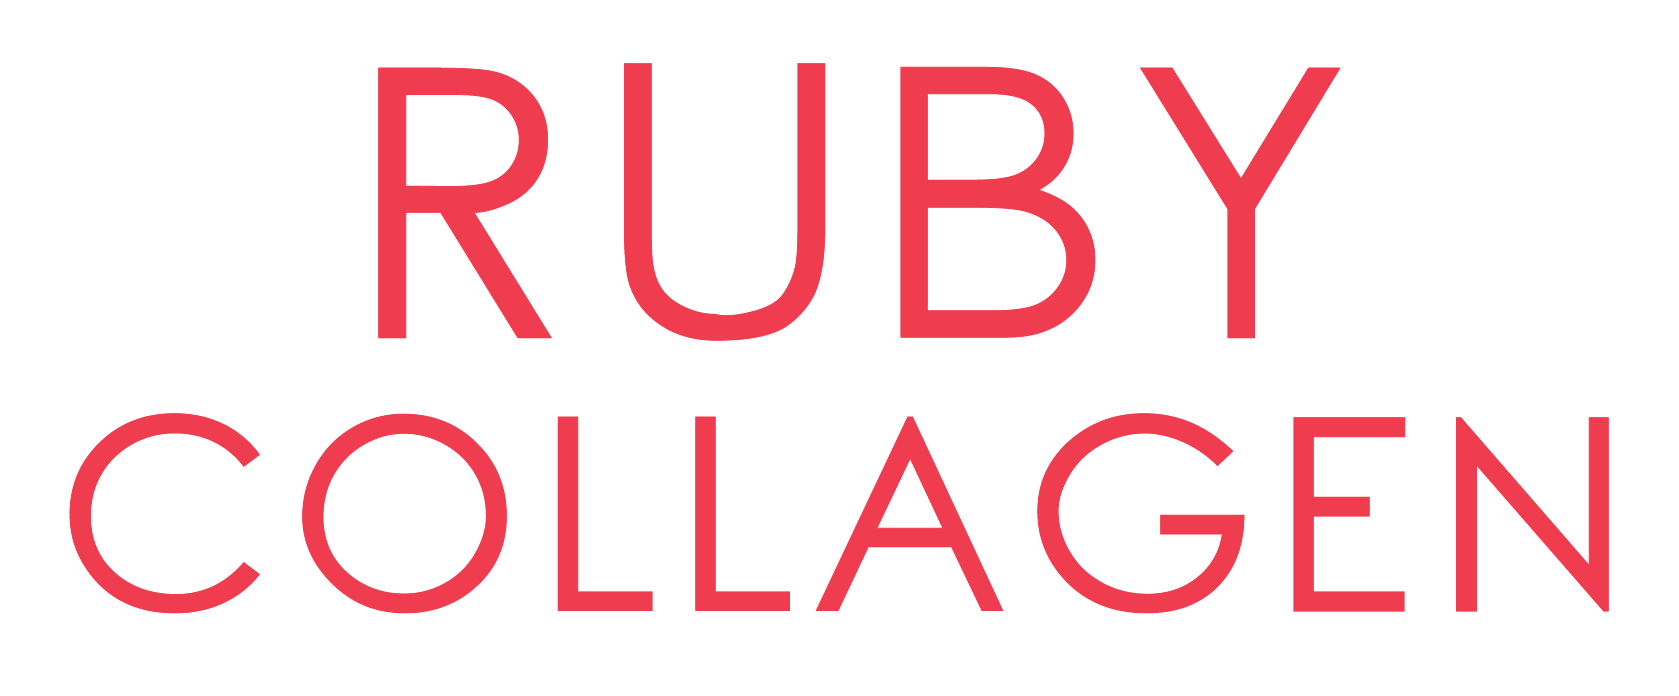 https://www.facebook.com/RubyByPuremed